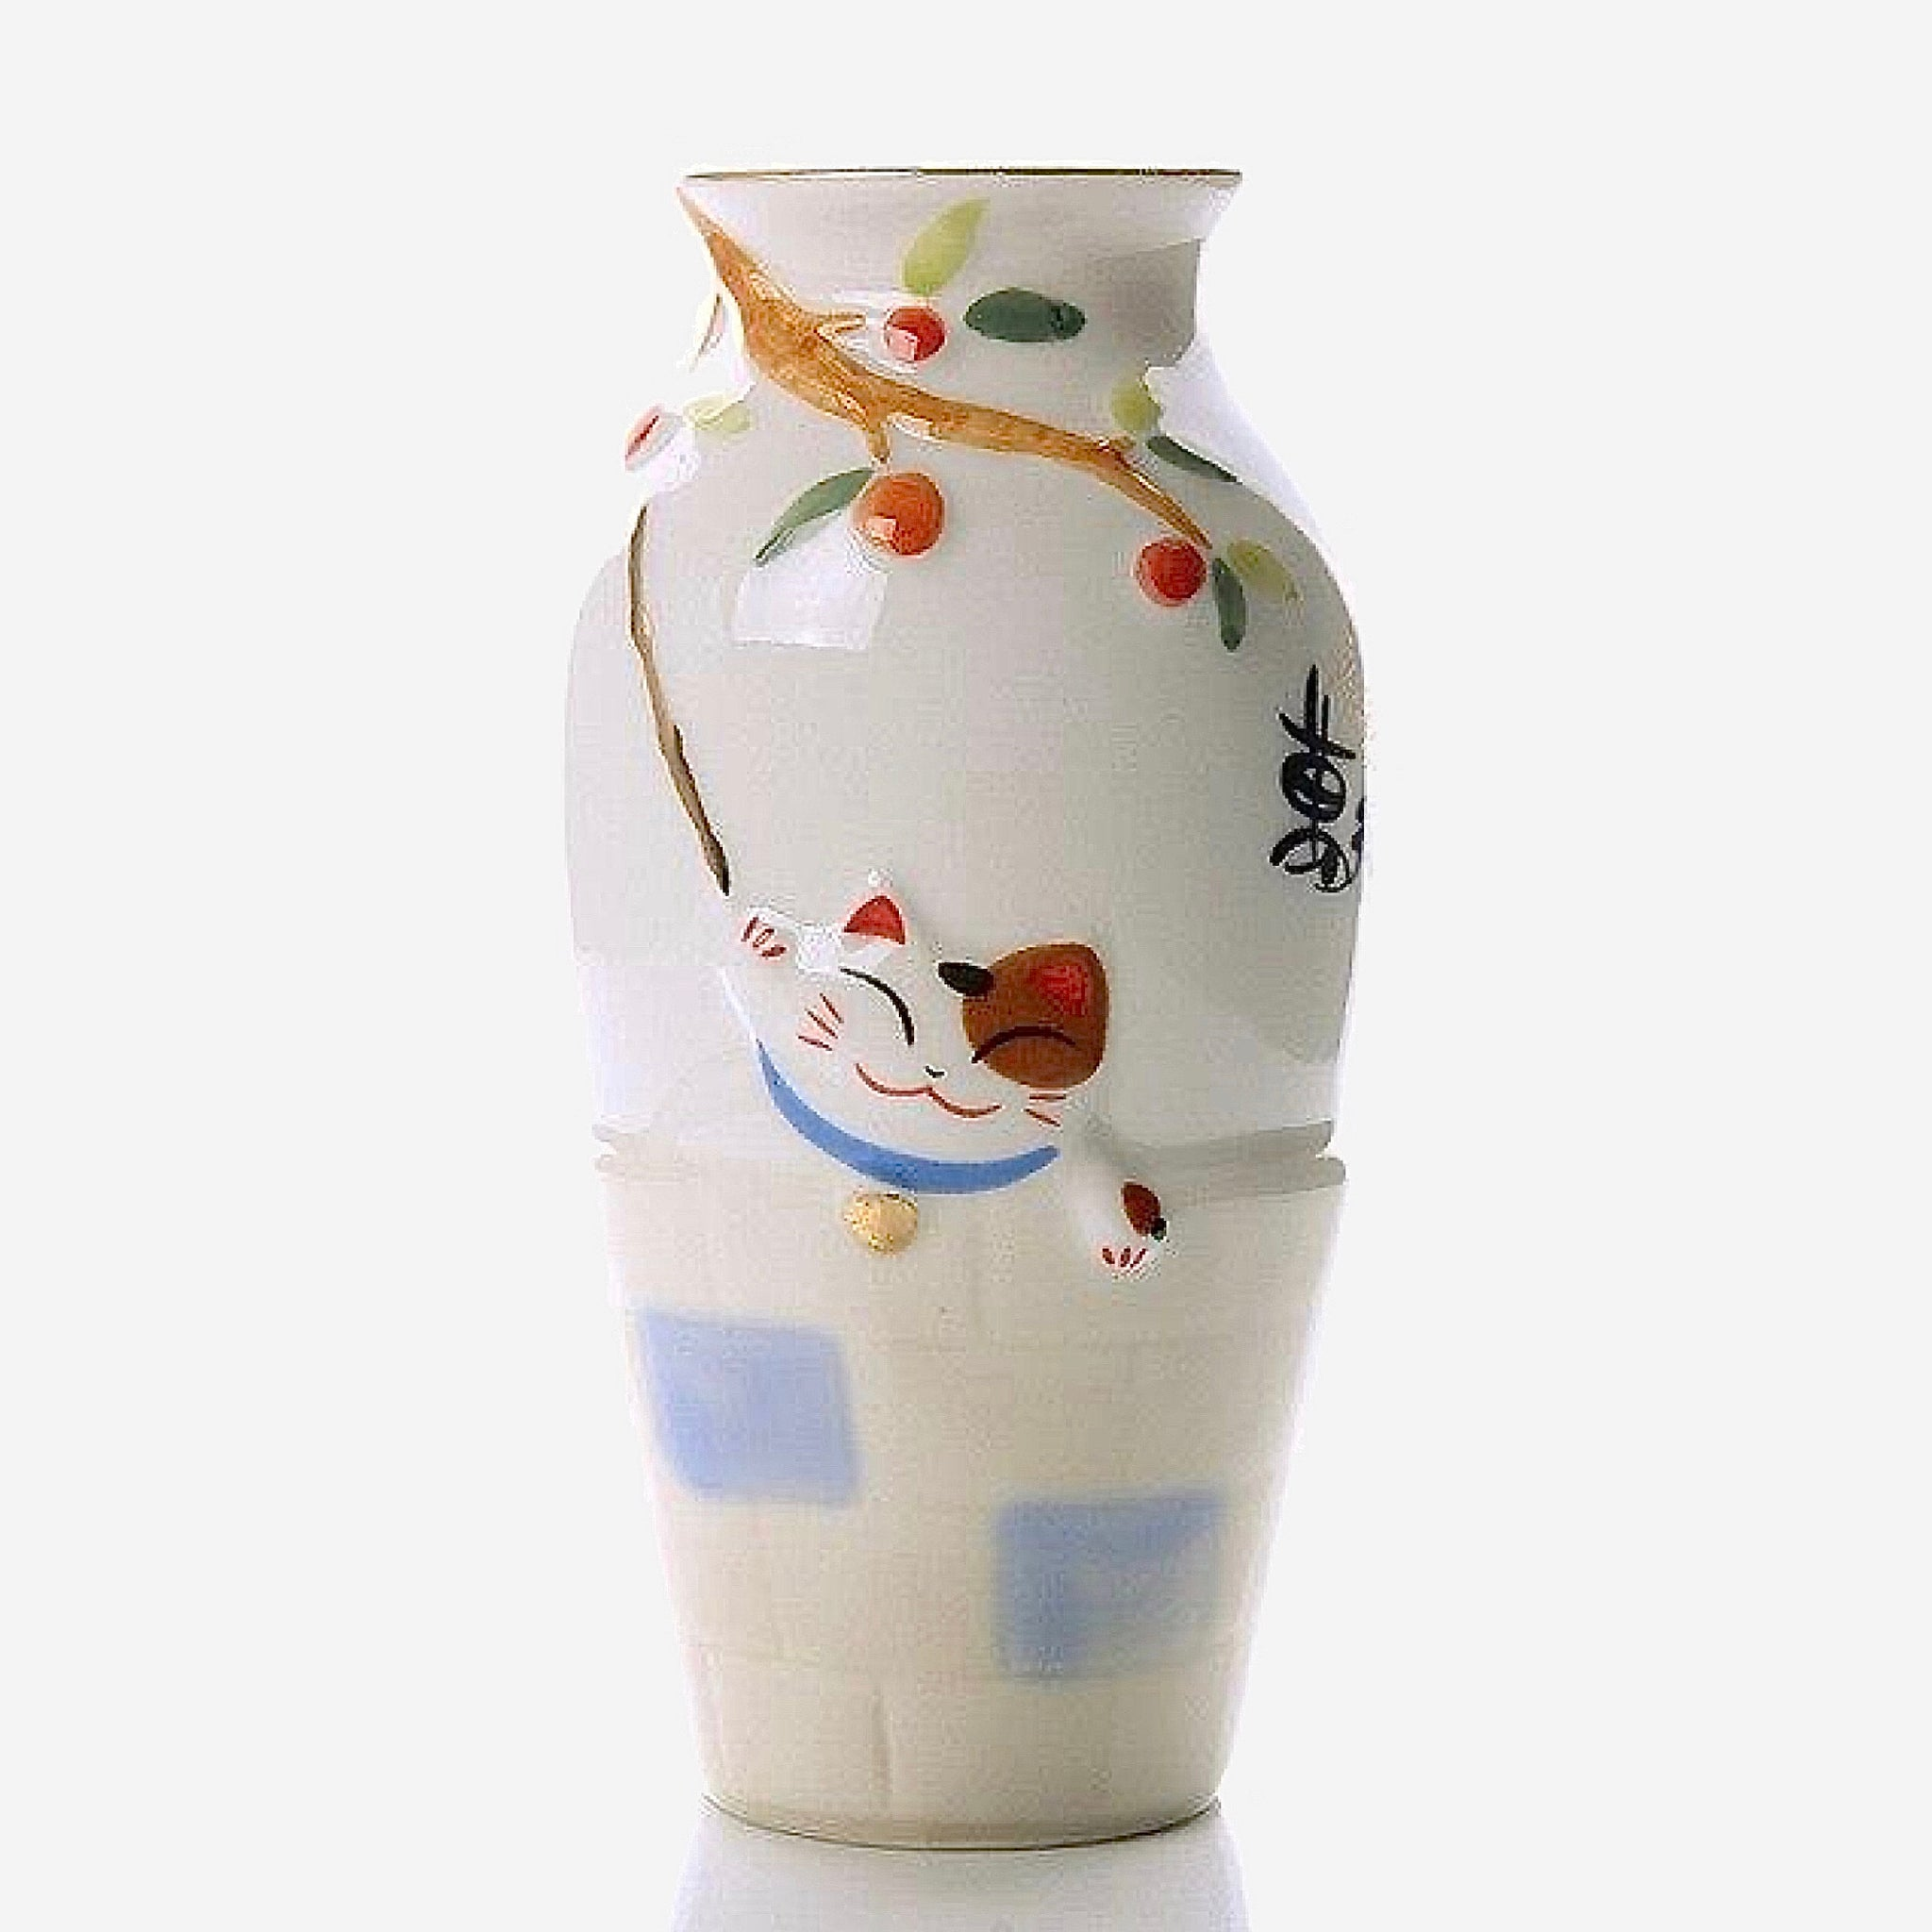 Lucky Cat Ceramic Origami Vase     Milky Flower Pot Flower Basket Plant Bonsai Modern Home Decor Vases Decoration Trend Lucky Cat Ceramic Origami Vase     Milky Flower Pot Flower Basket Plant Bonsai Modern Home Decor Vases Decoration Trend